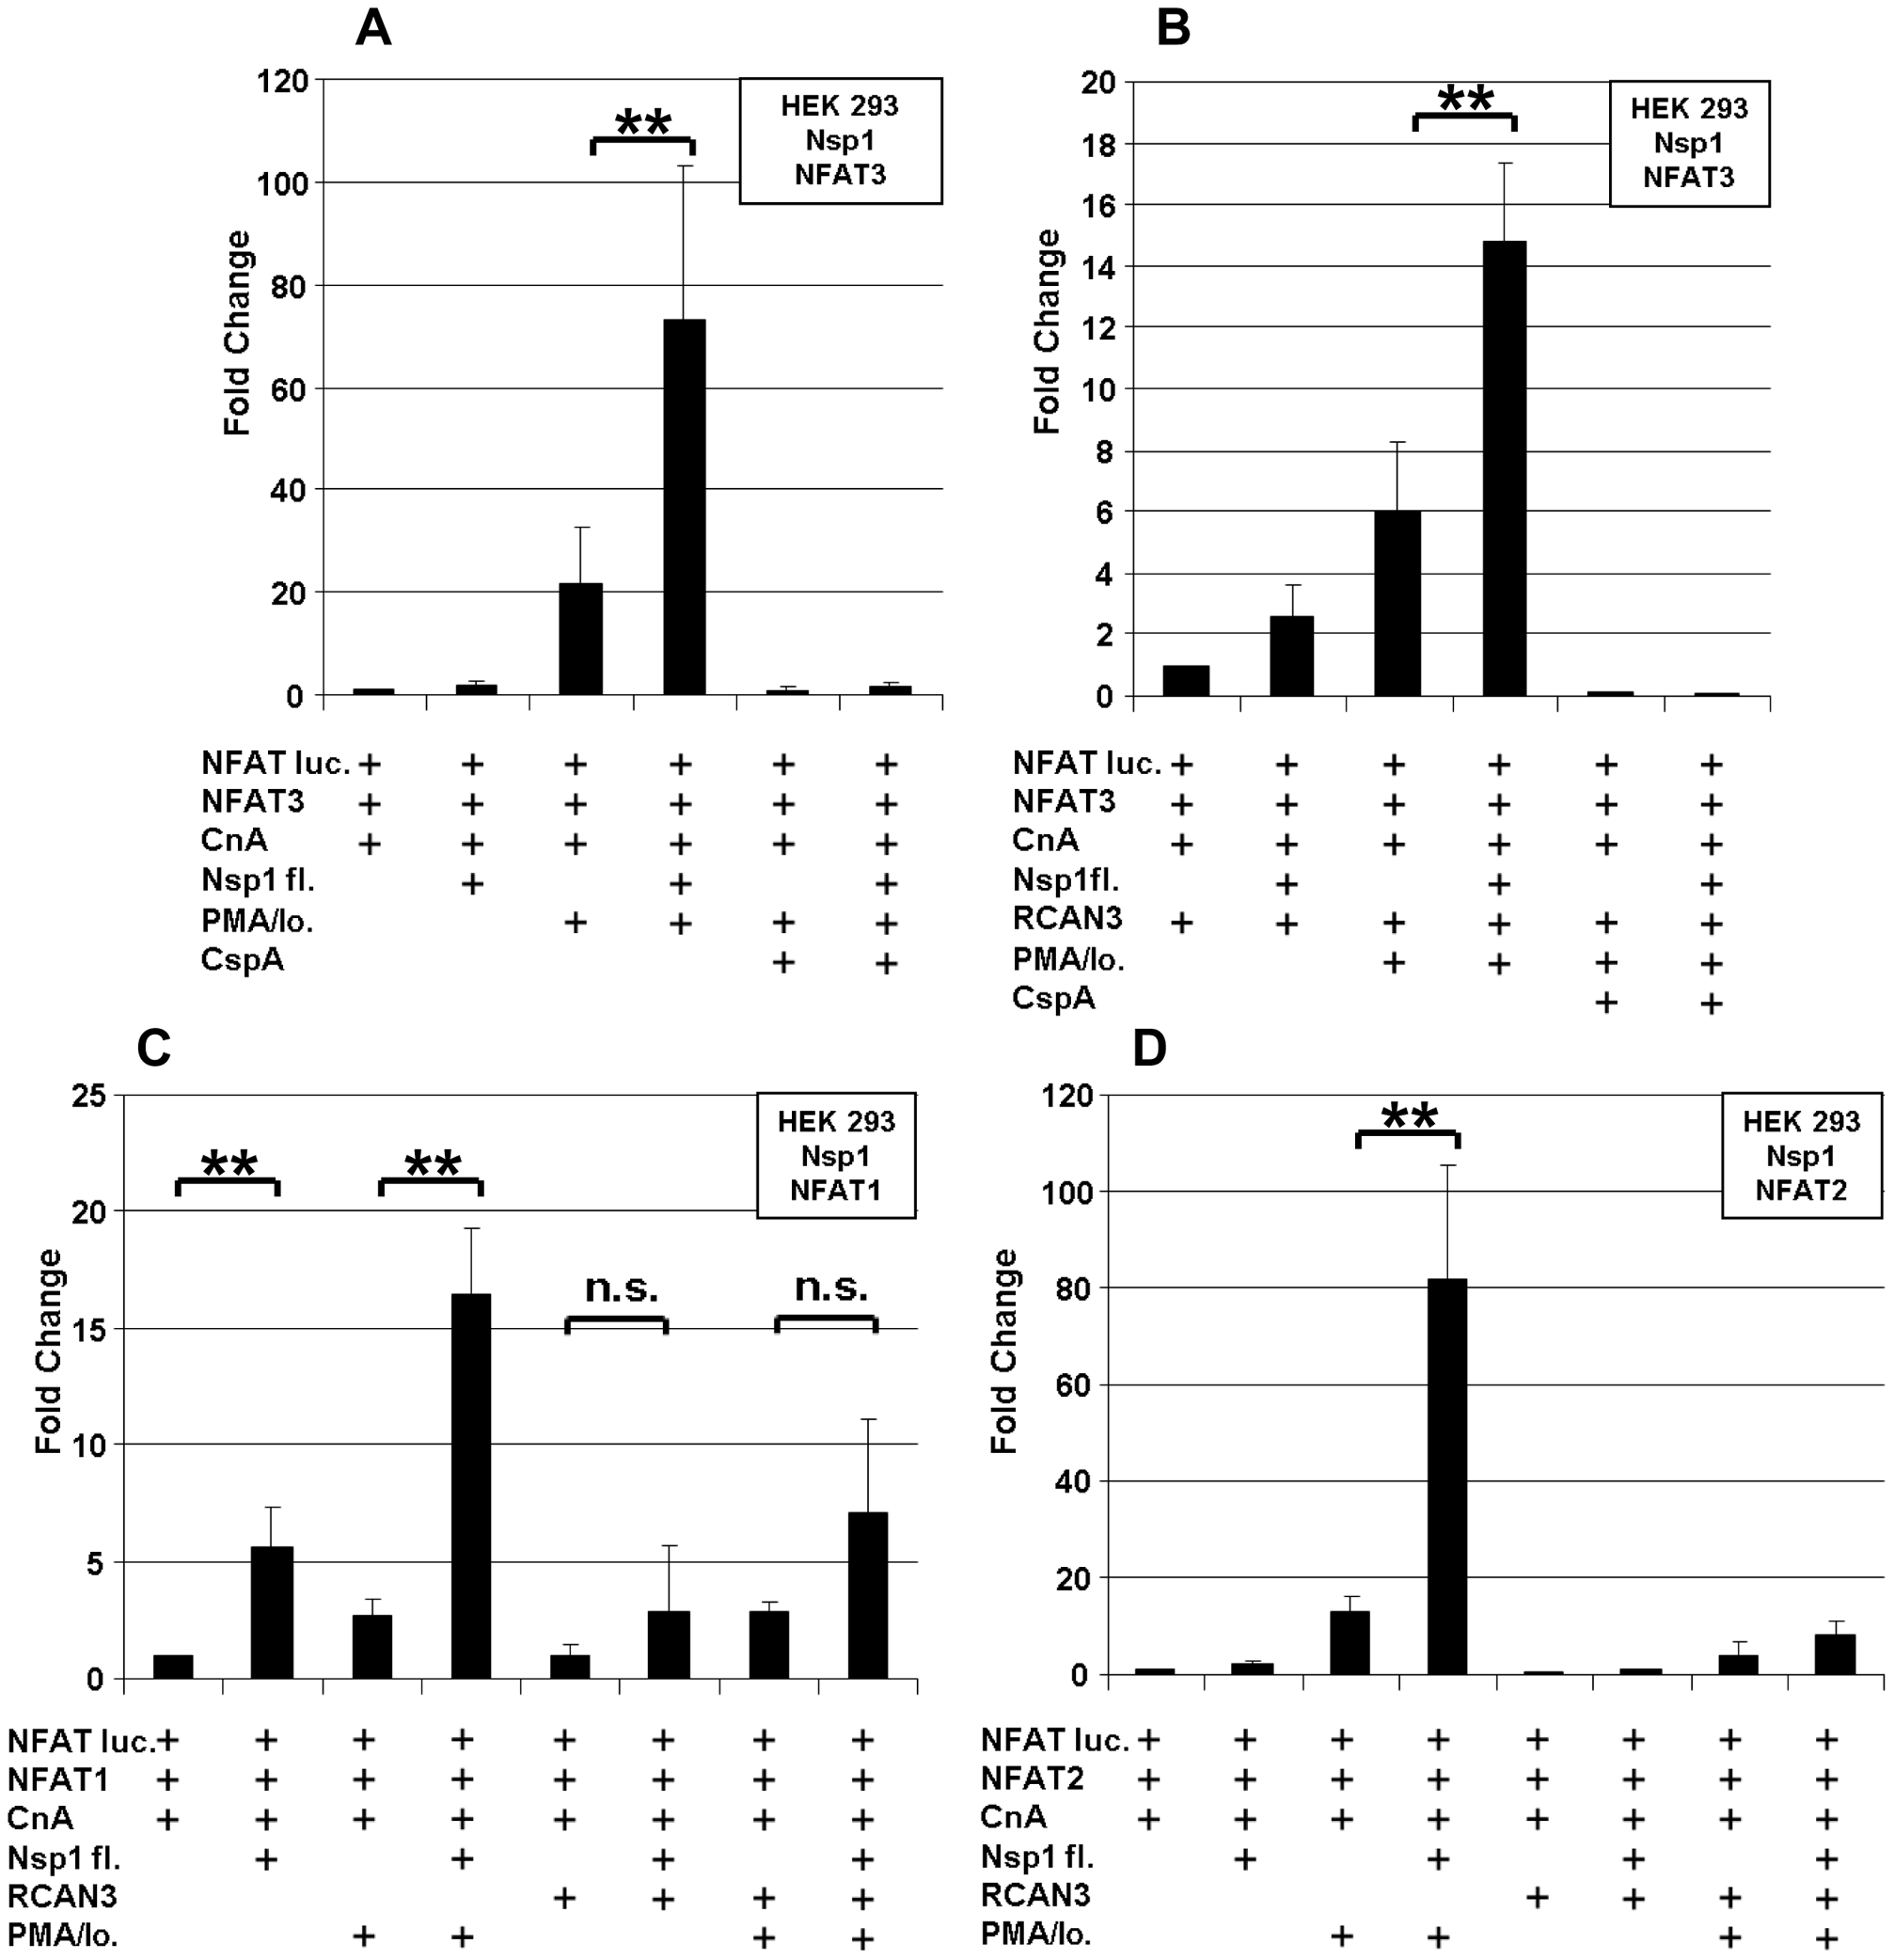 SARS-CoV Nsp1 full length (Nsp1fl) induces NFAT-regulated gene expression <i>in vitro</i> independently of the NFAT molecular species, and the calcipressin RCAN3 extenuates the effect.